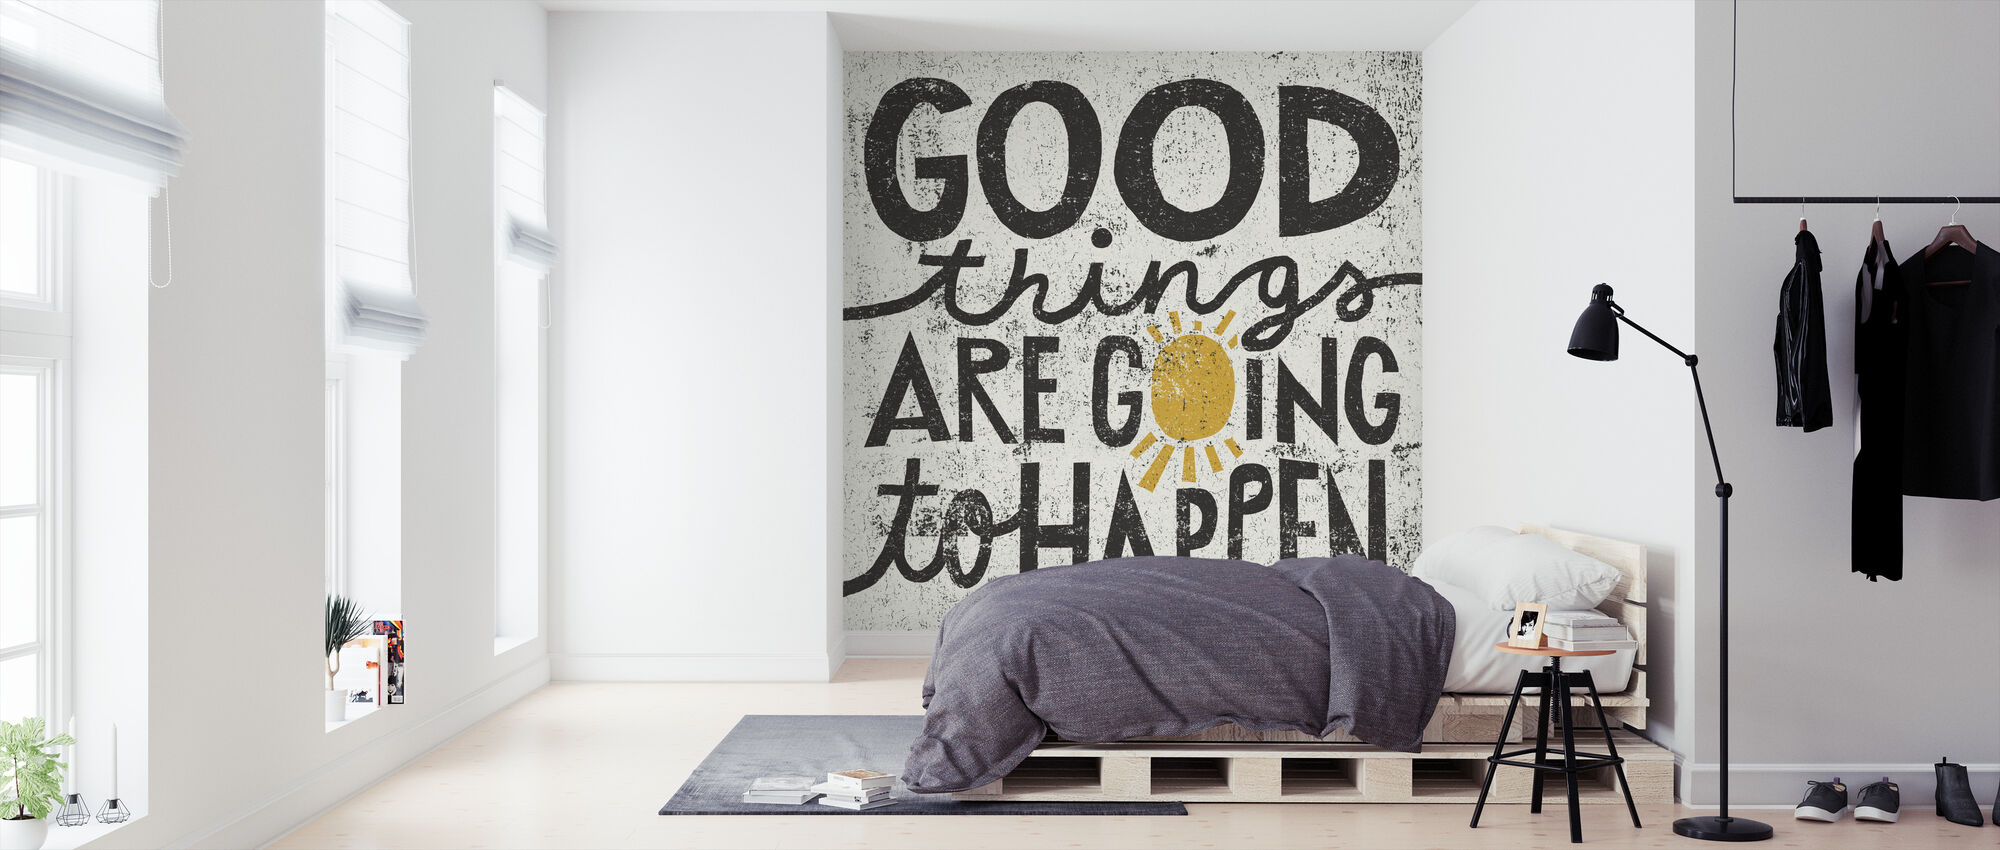 Good Things are Going to Happen - Wallpaper - Bedroom